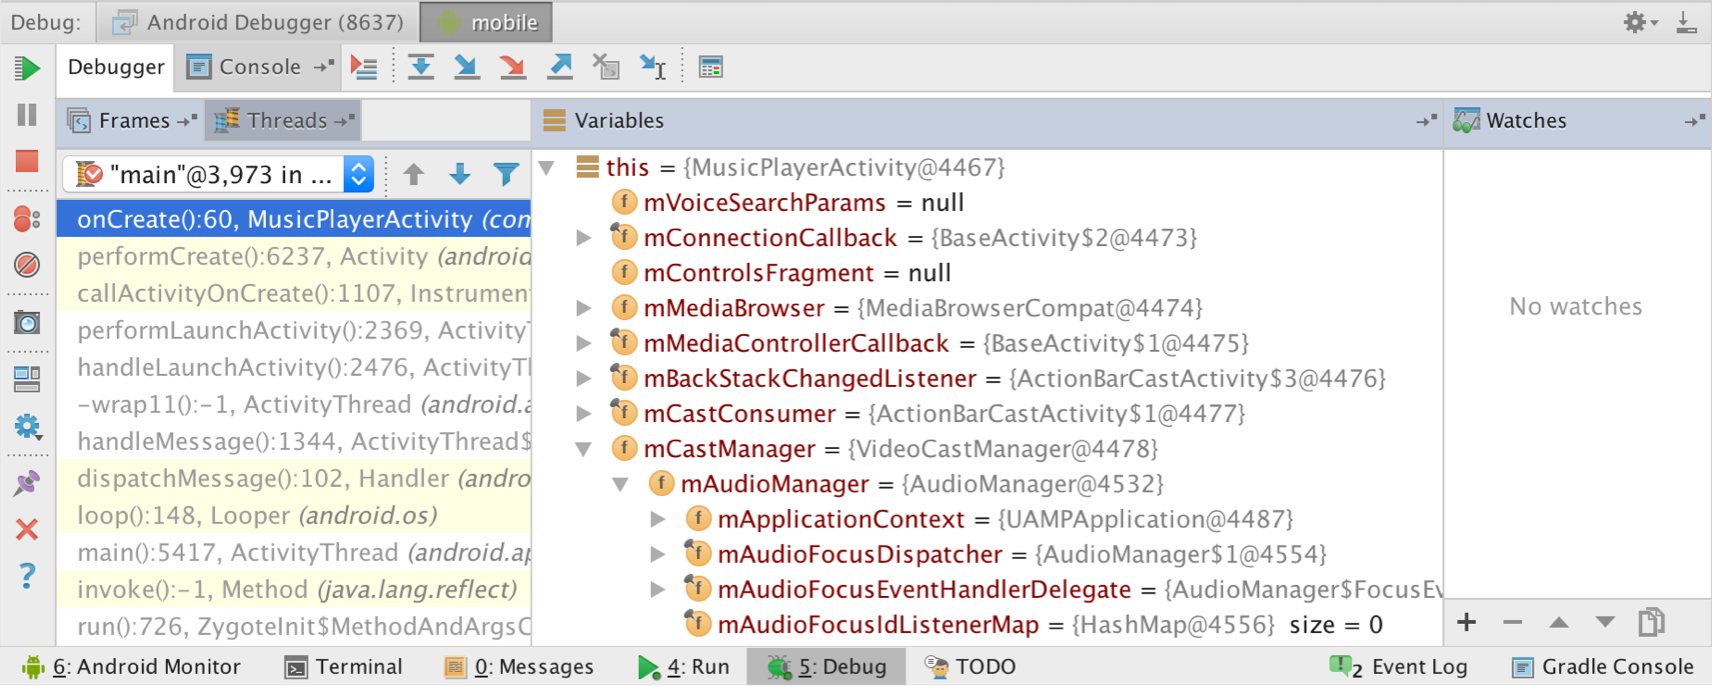 Phone Debugging Android Phone debug your app android studio if no devices appear in the select deployment target window after you click then need to either connect a device or create new emulator to